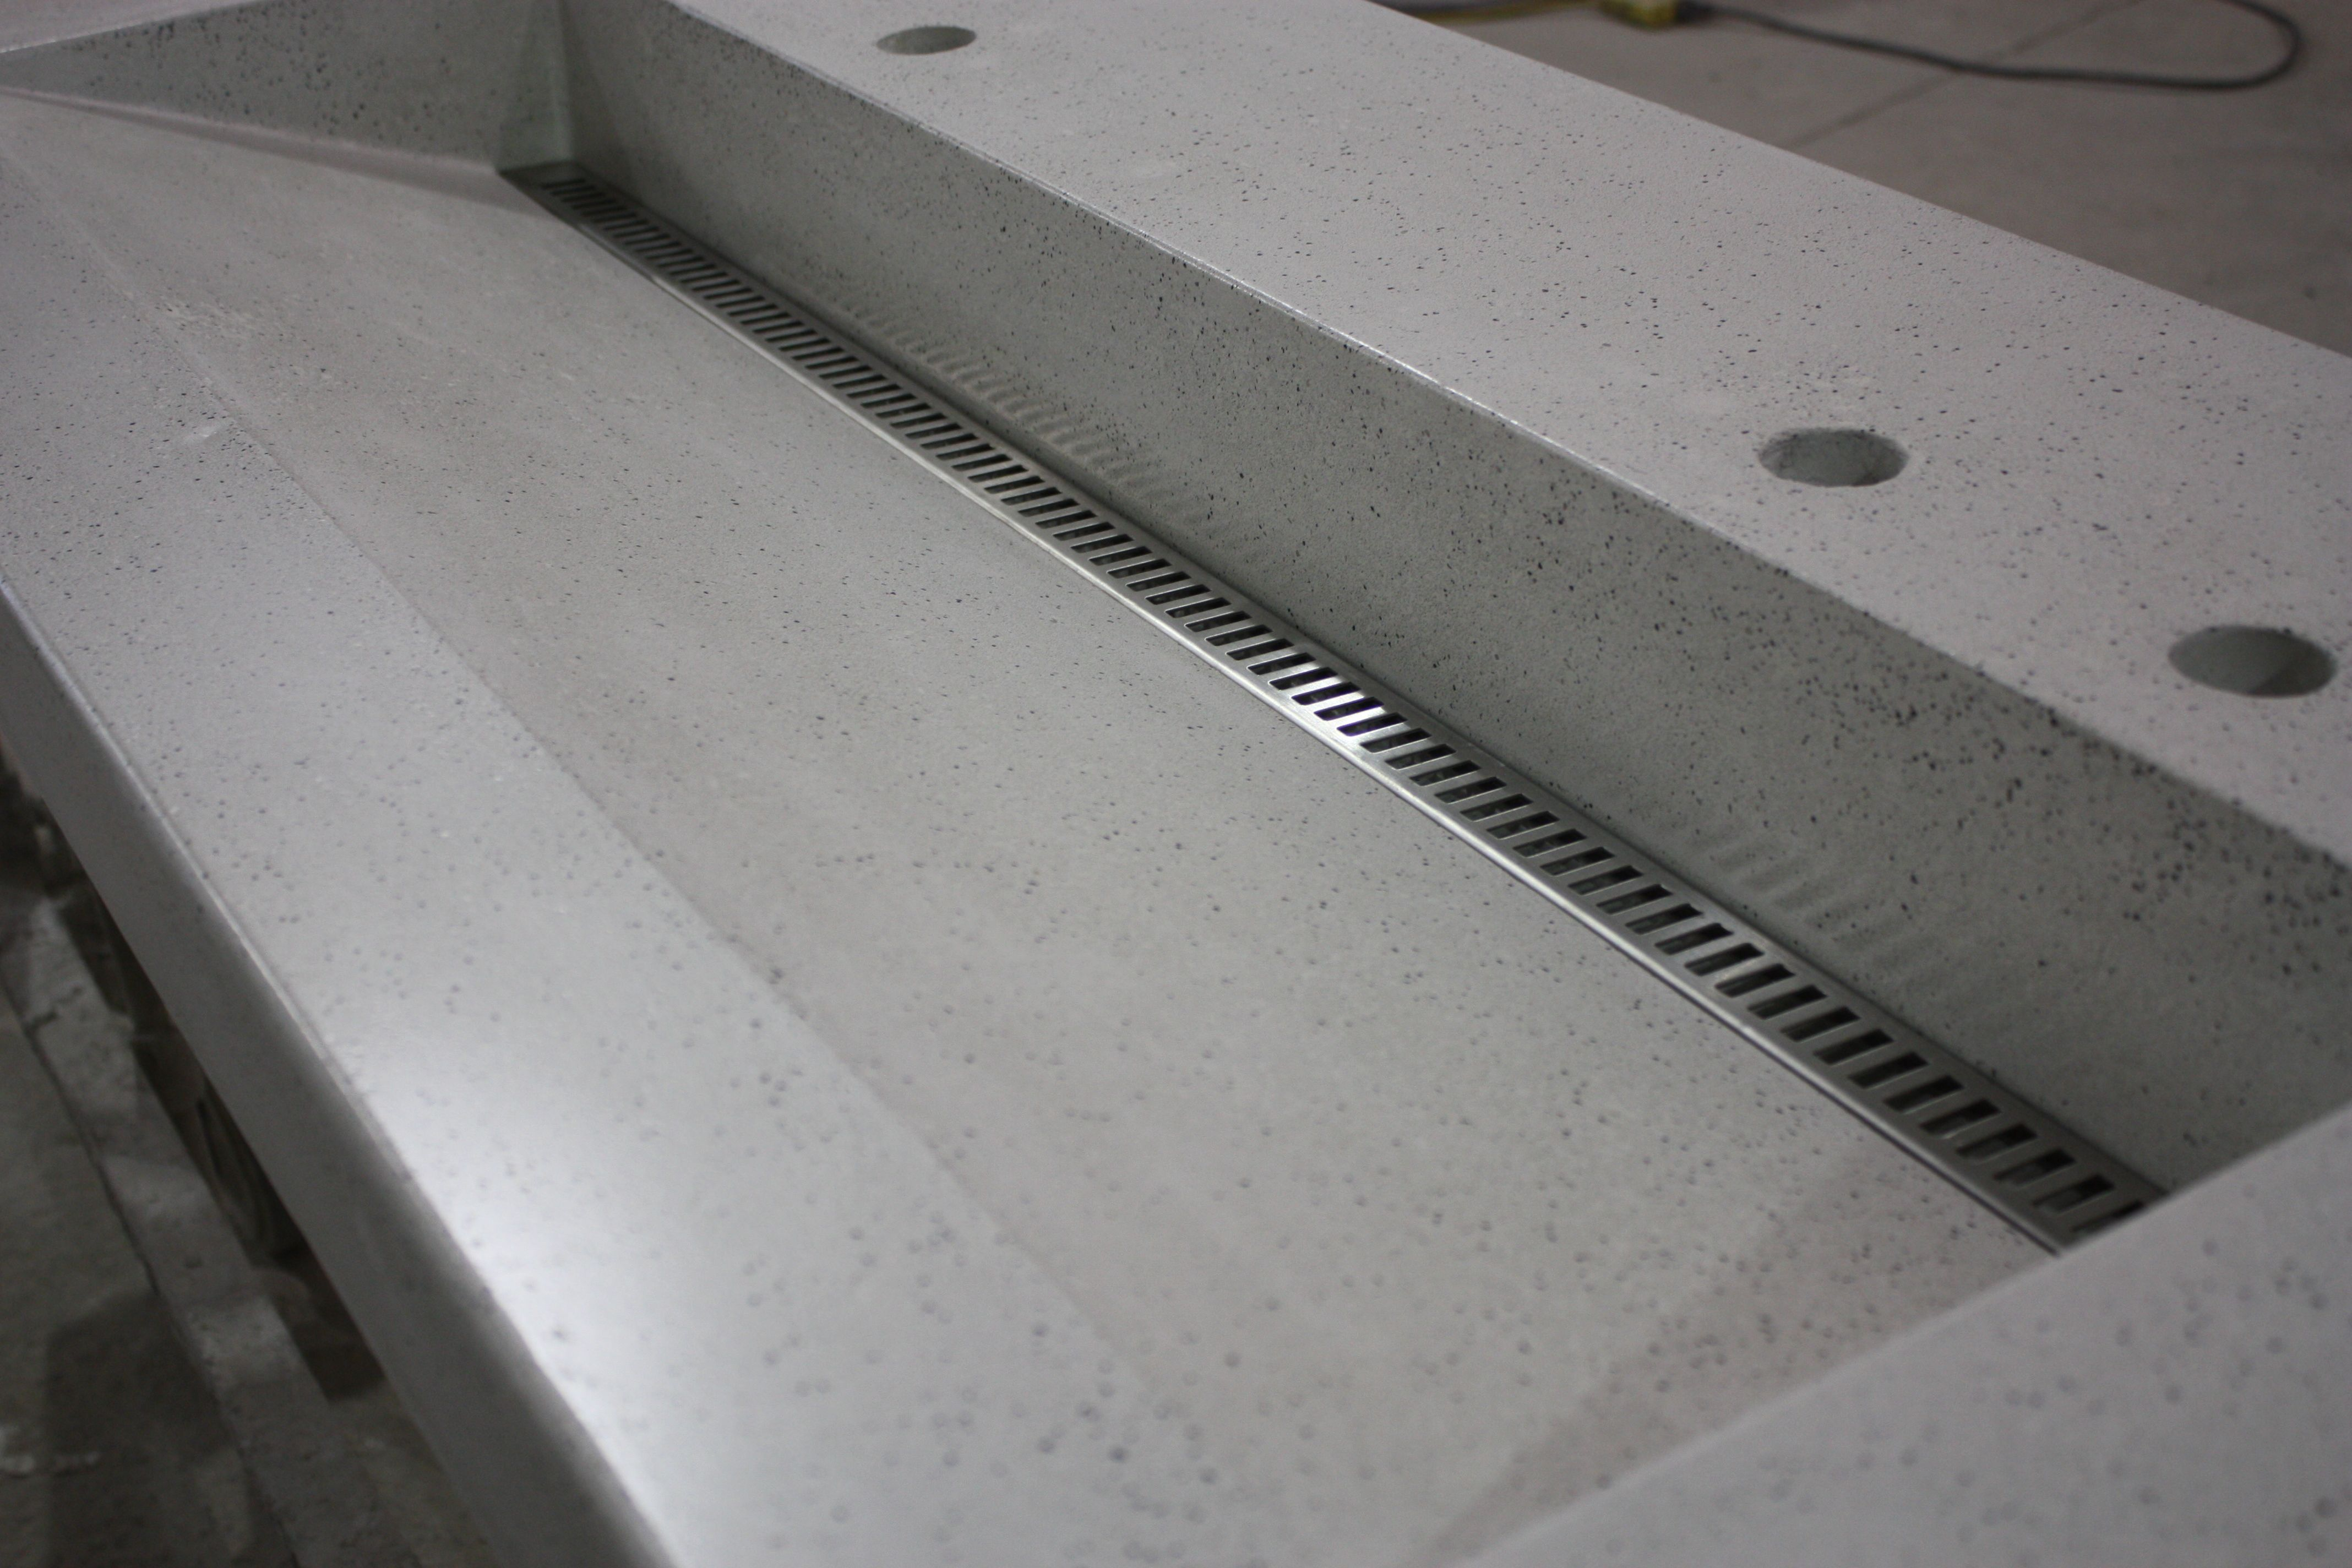 Slot Drain Trough Sink With A Stainless Linear Drain Cover With